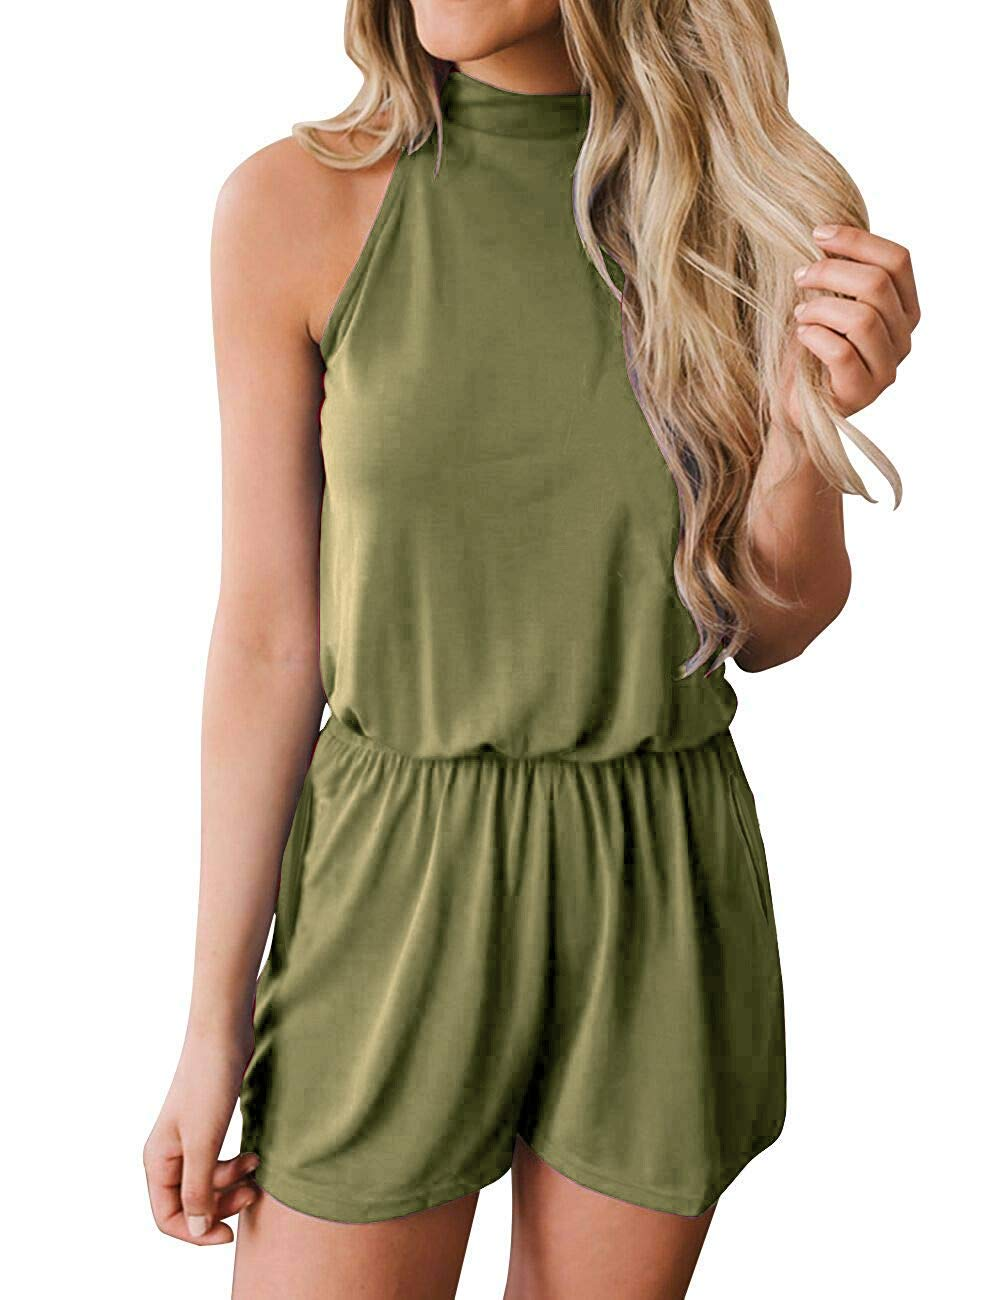 Good and easy romper.